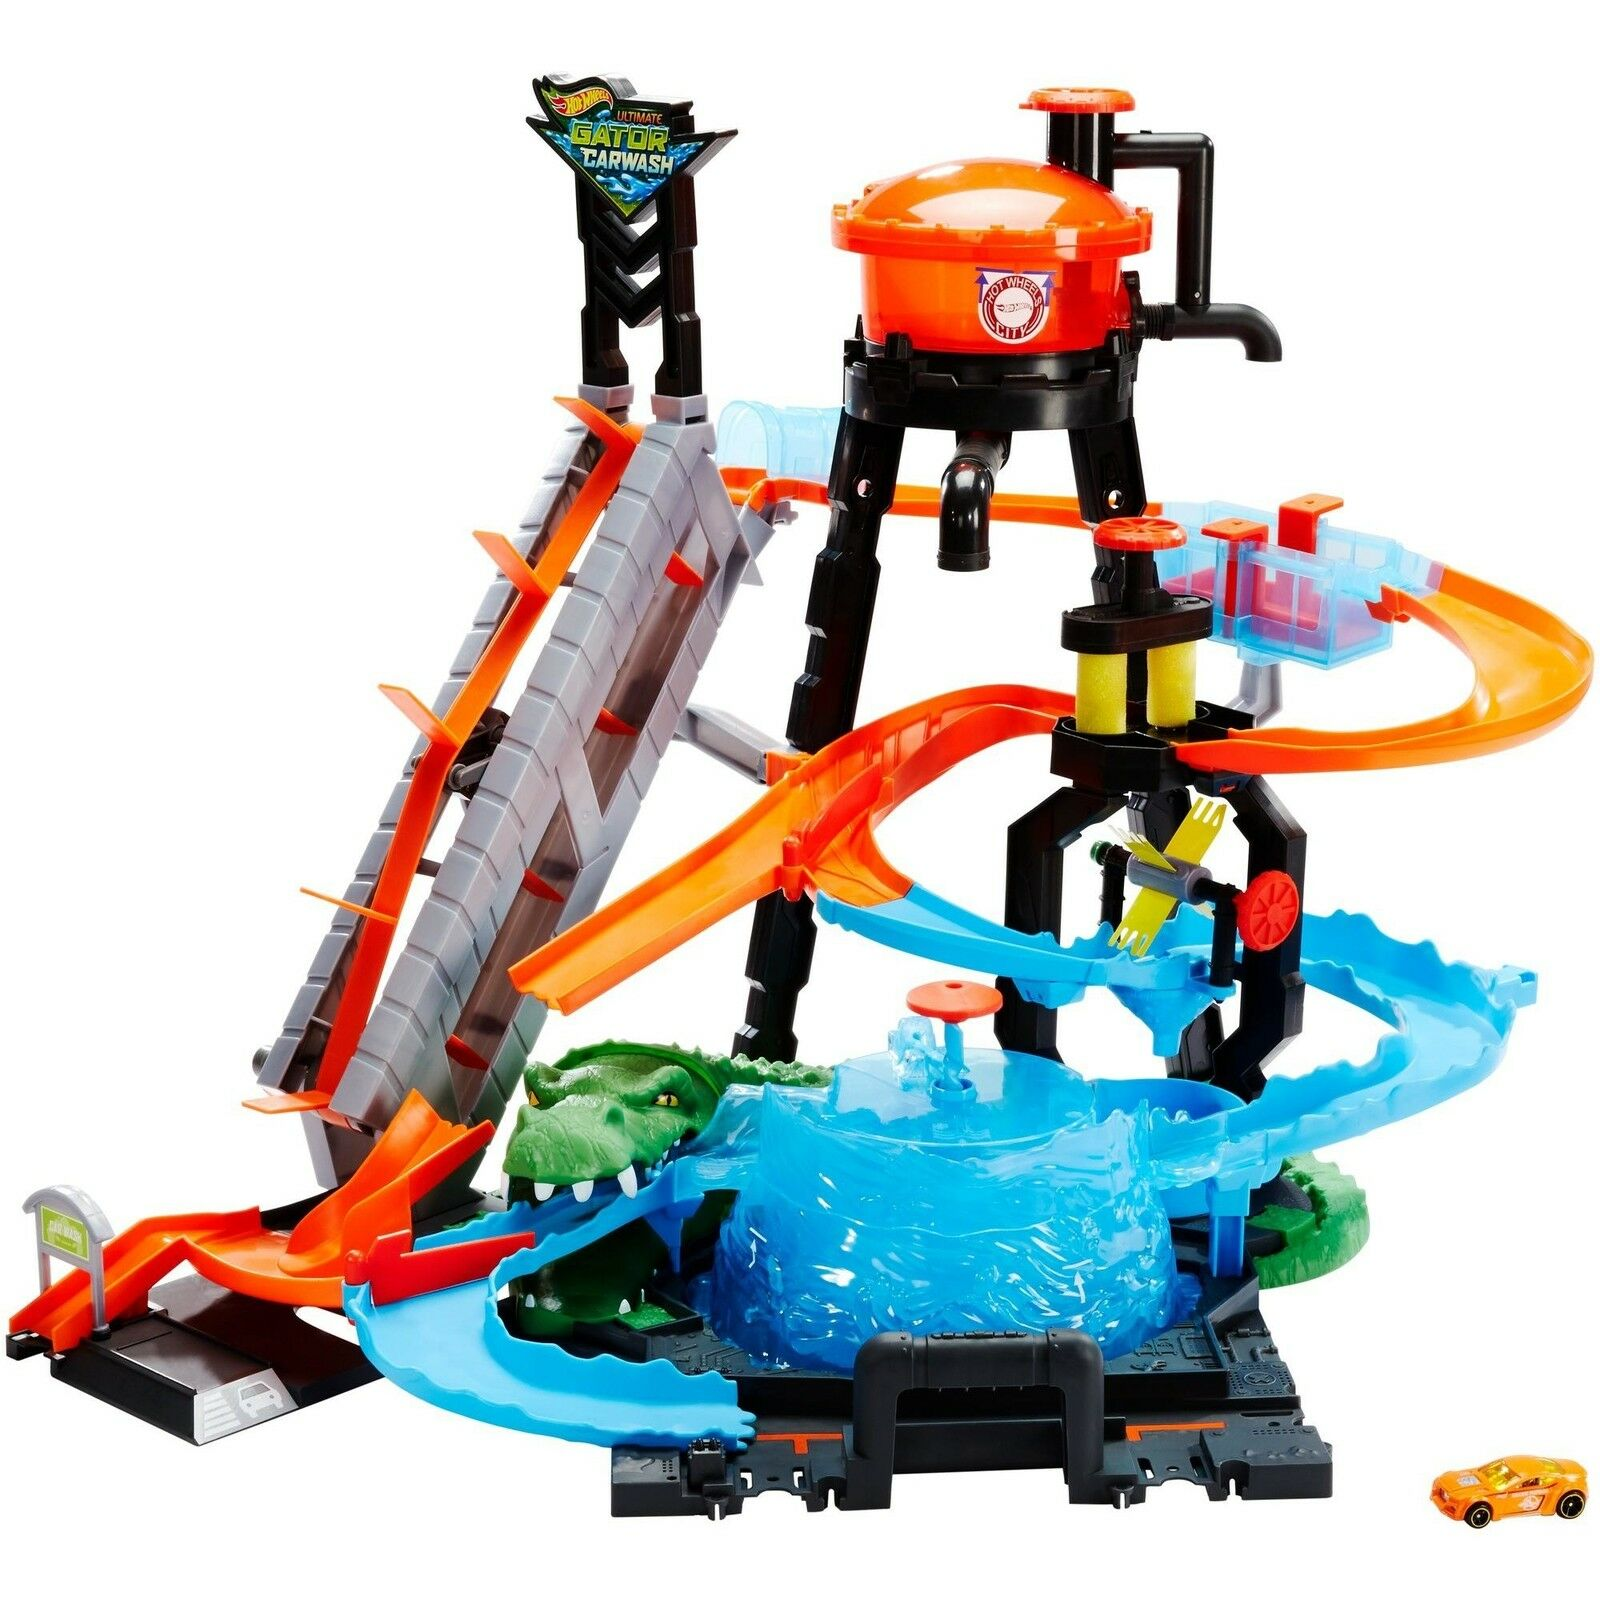 HOT WHEELS Ultimate Gator Lavage Voiture Playset